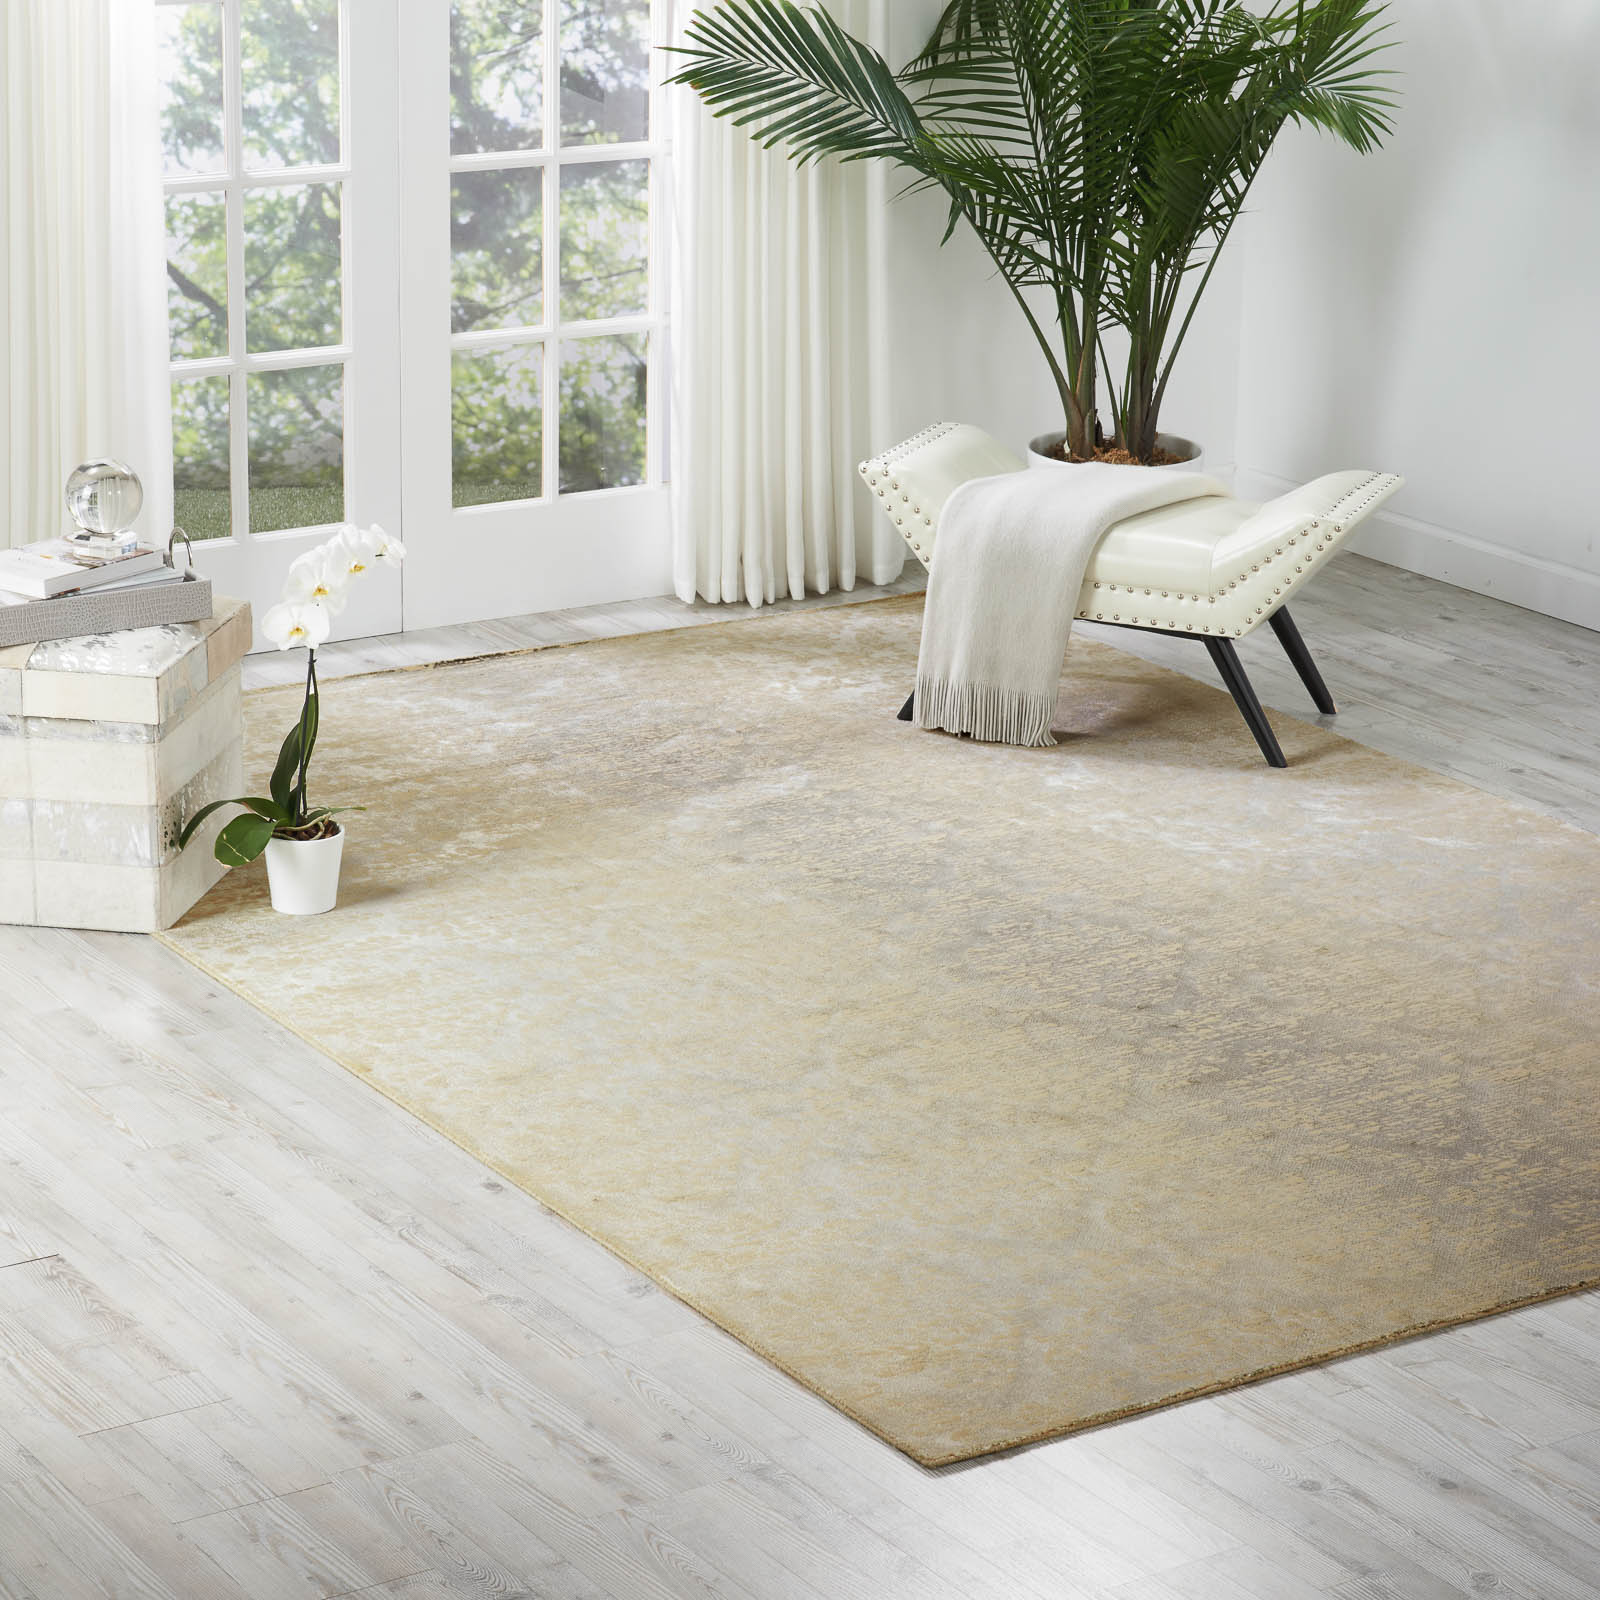 Nourison Luminance Rugs LUM03 in Sea Mist